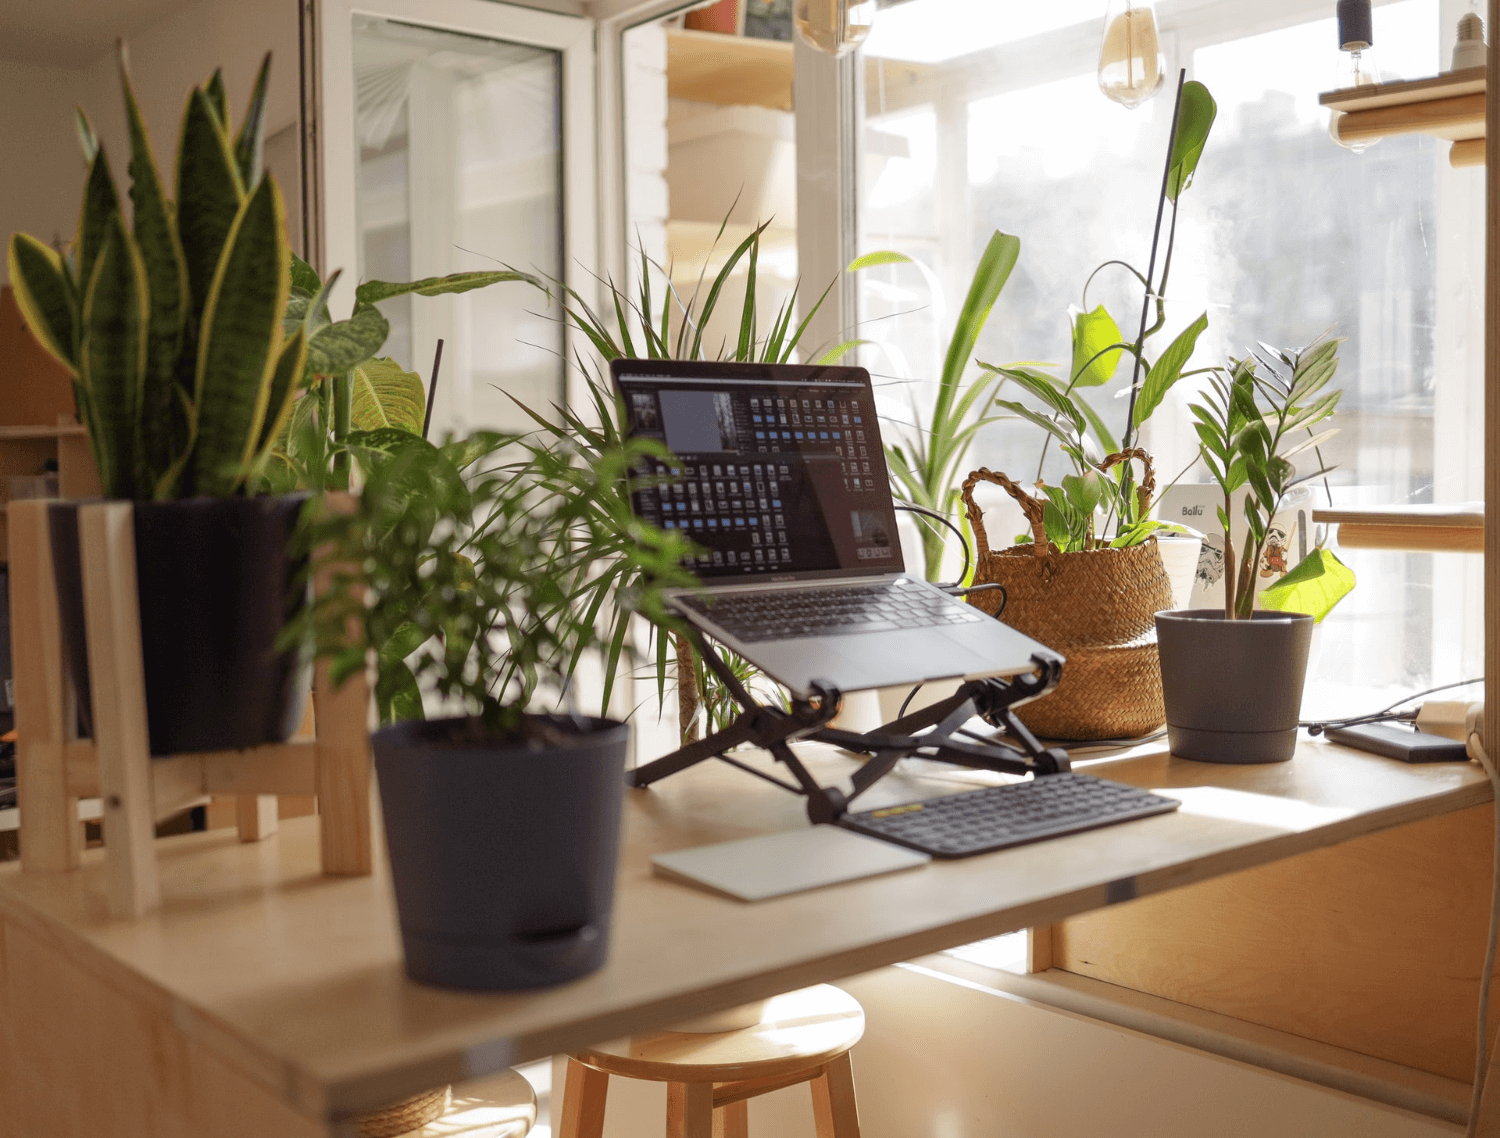 Freelancing allows you to work from home - home office with plants